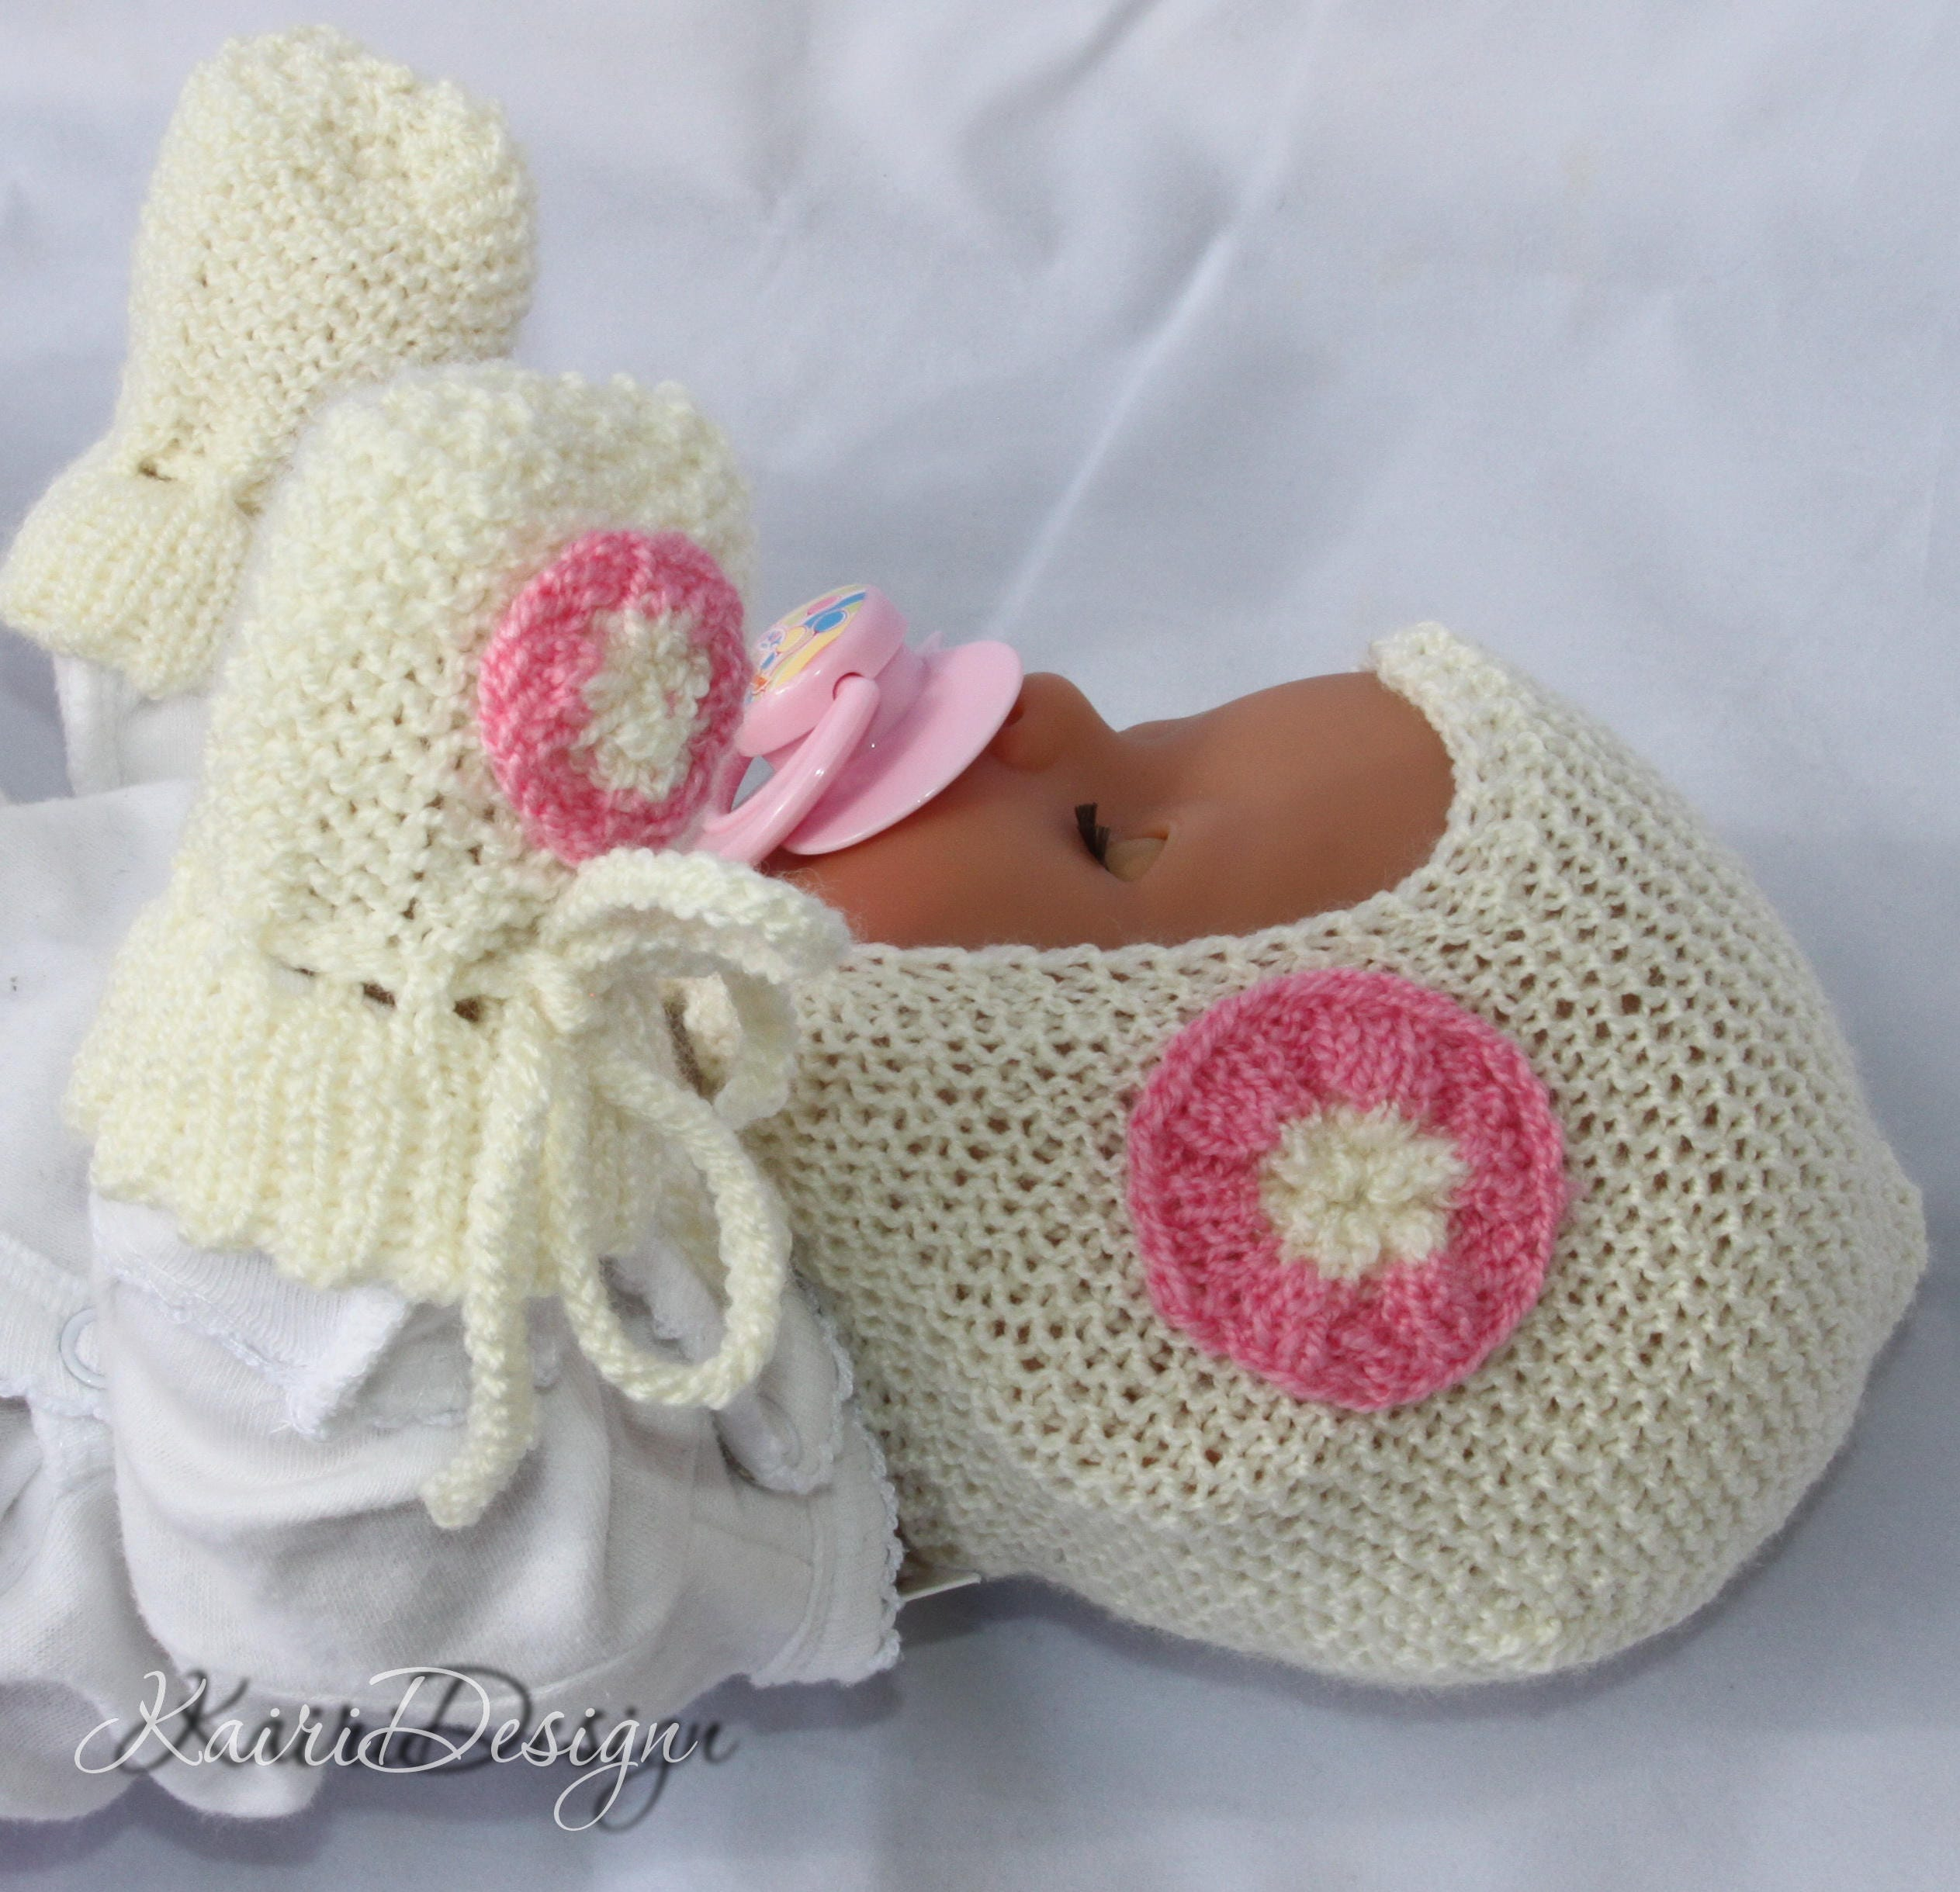 Fine Baby Born Doll Clothes Knitting Patterns Ensign - Sewing ...